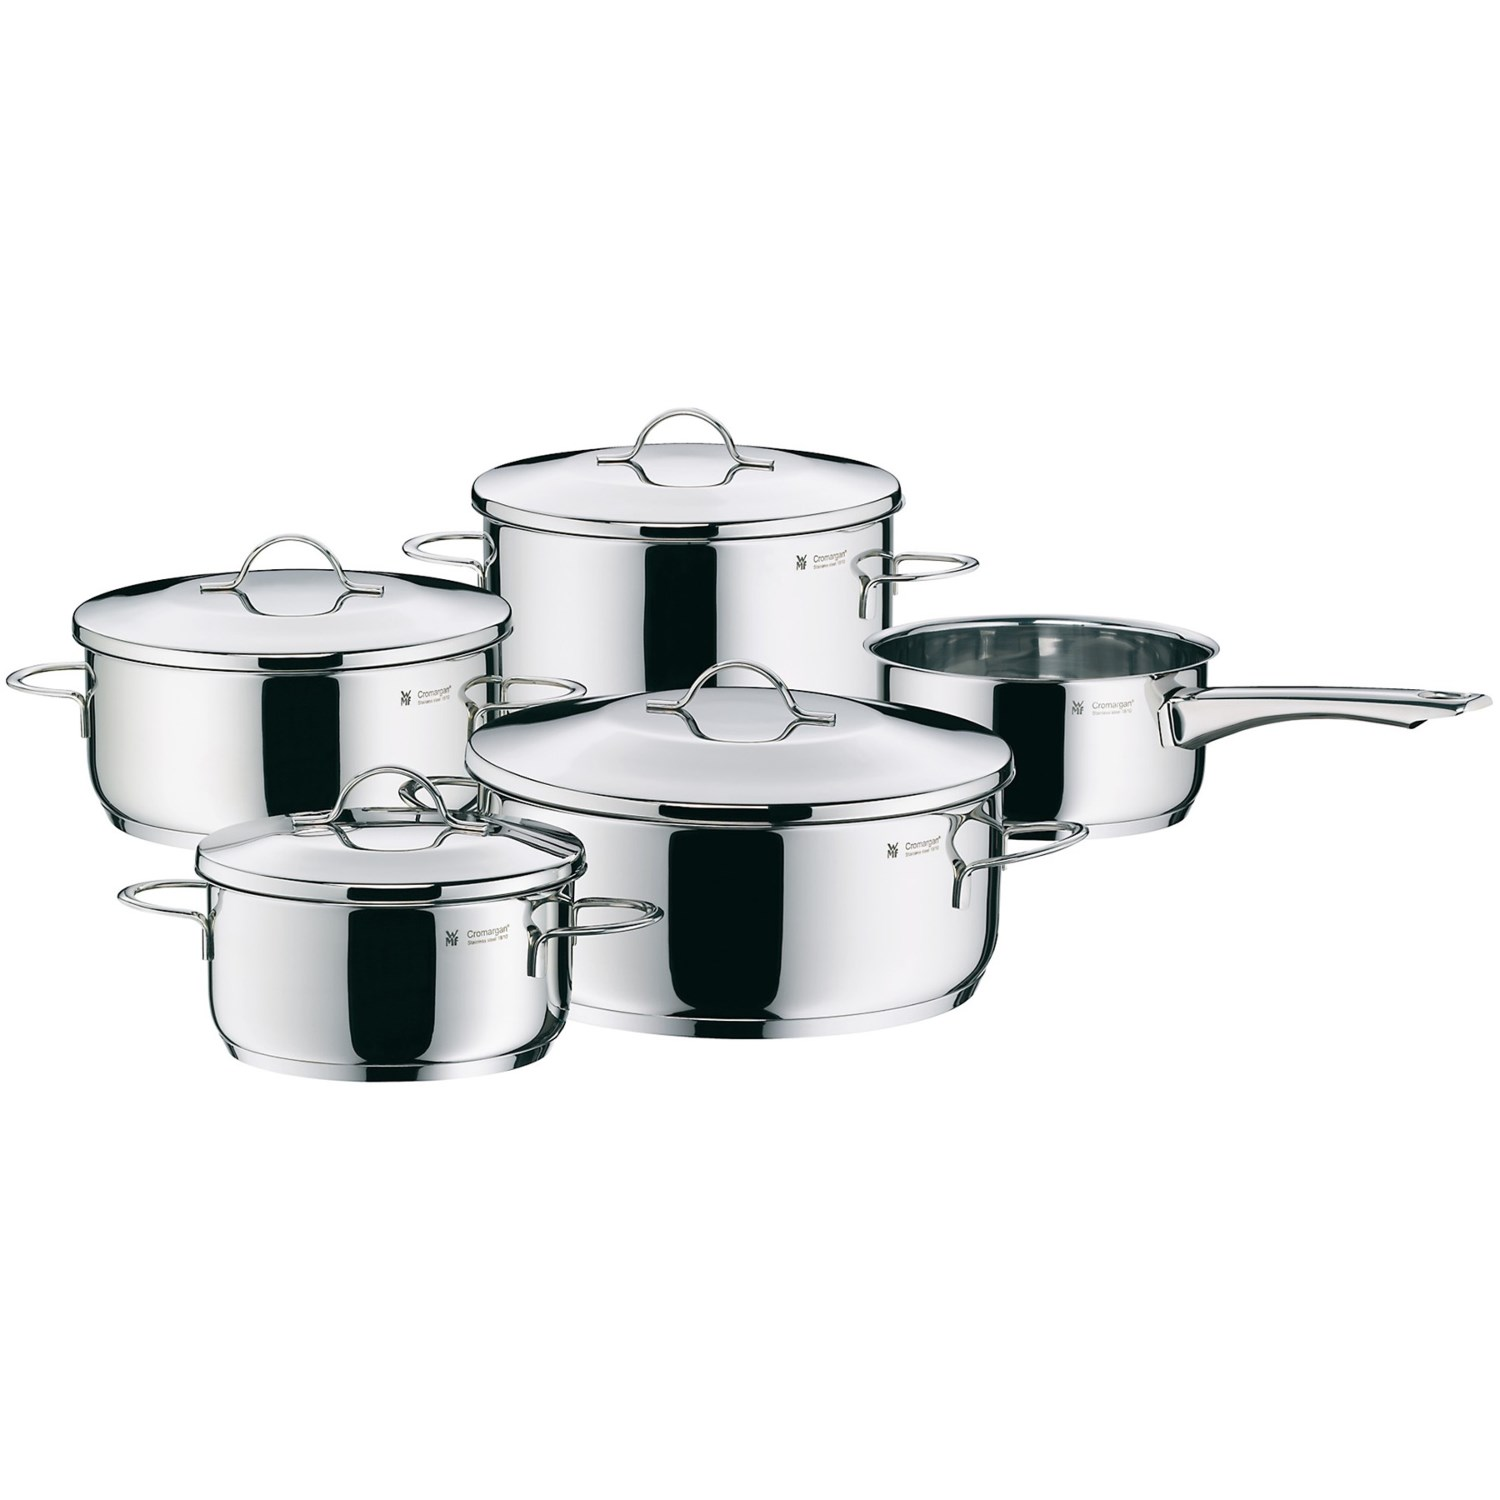 wmf casa cookware set cromargan 18 10 stainless steel 9 piece 6941d save 57. Black Bedroom Furniture Sets. Home Design Ideas